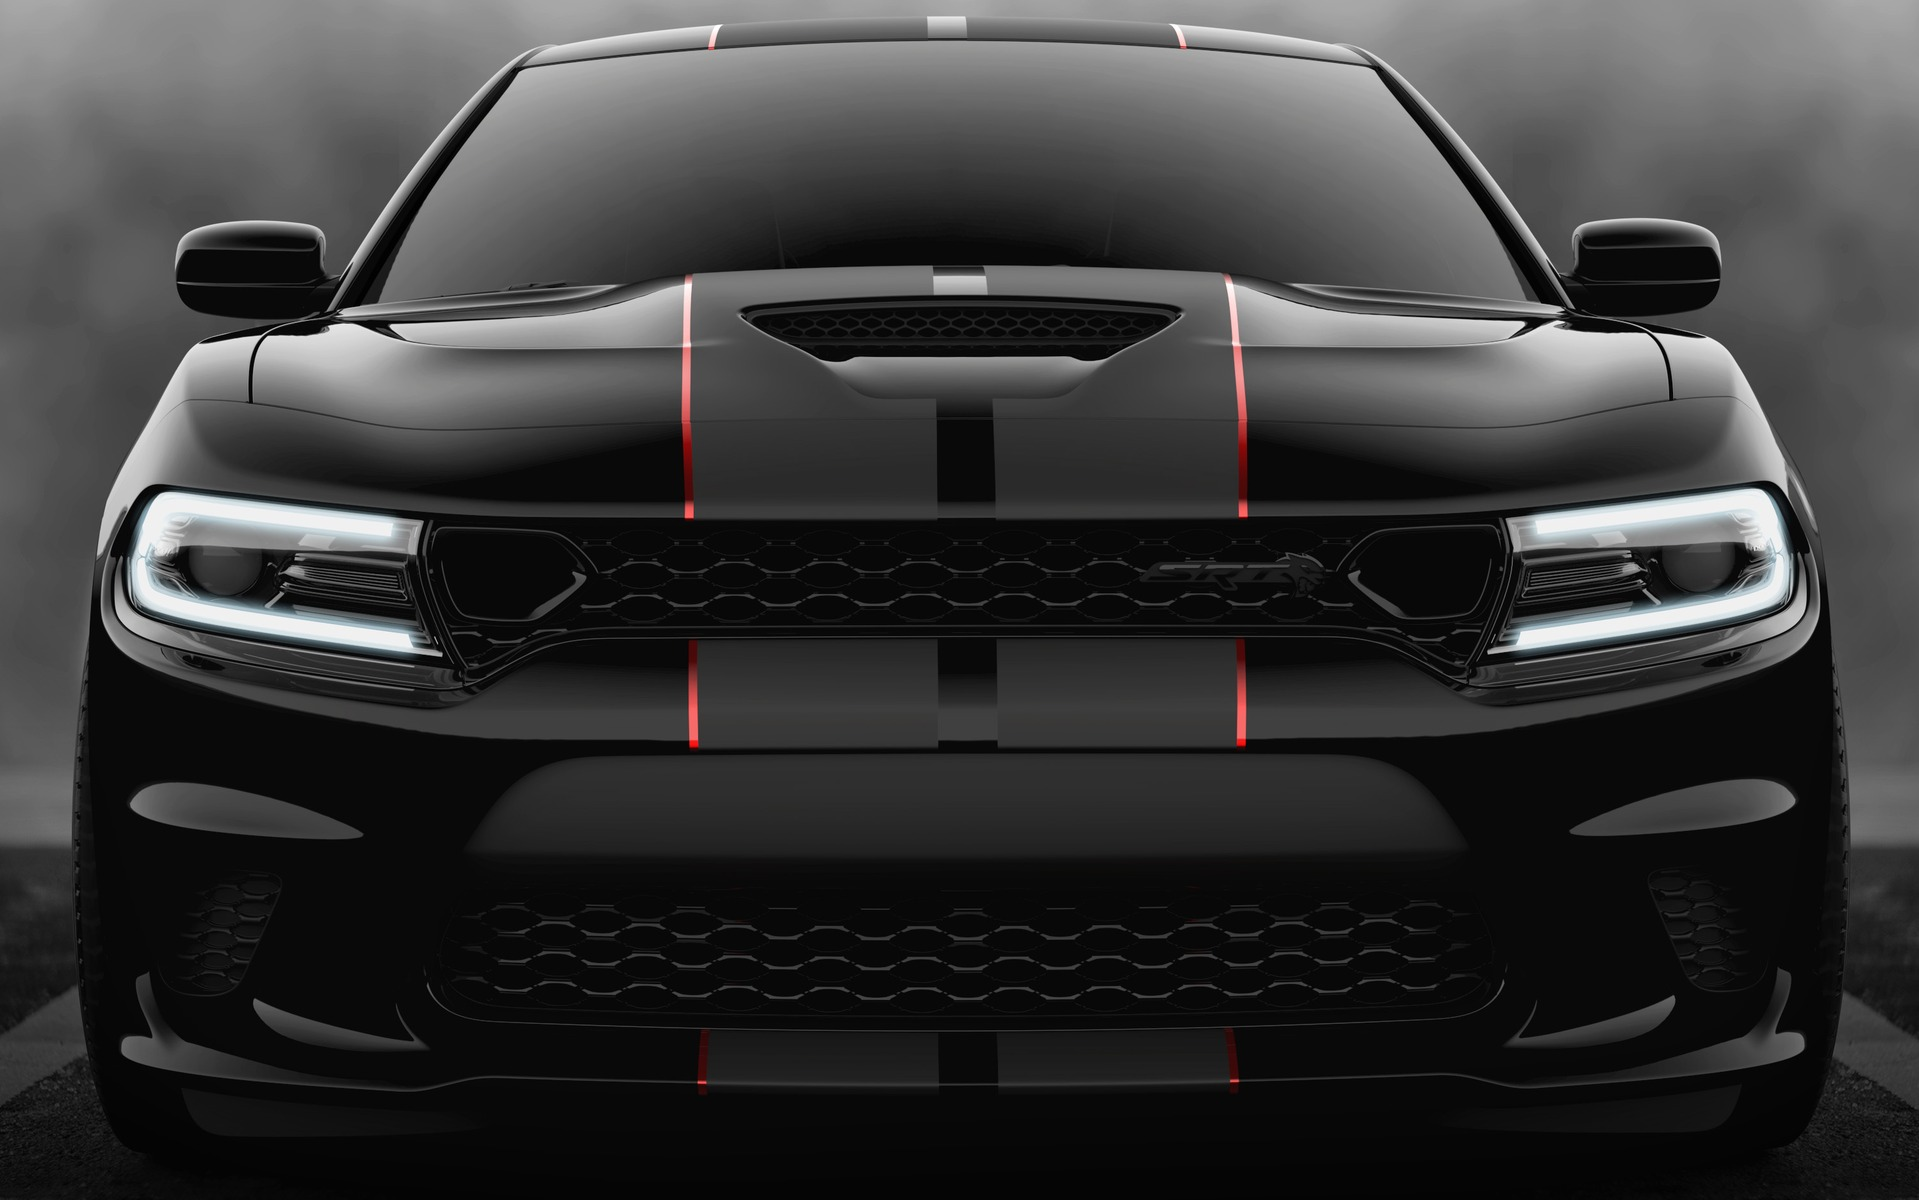 Voici la Dodge Charger SRT Hellcat Octane 380369_2019_Dodge_Charger